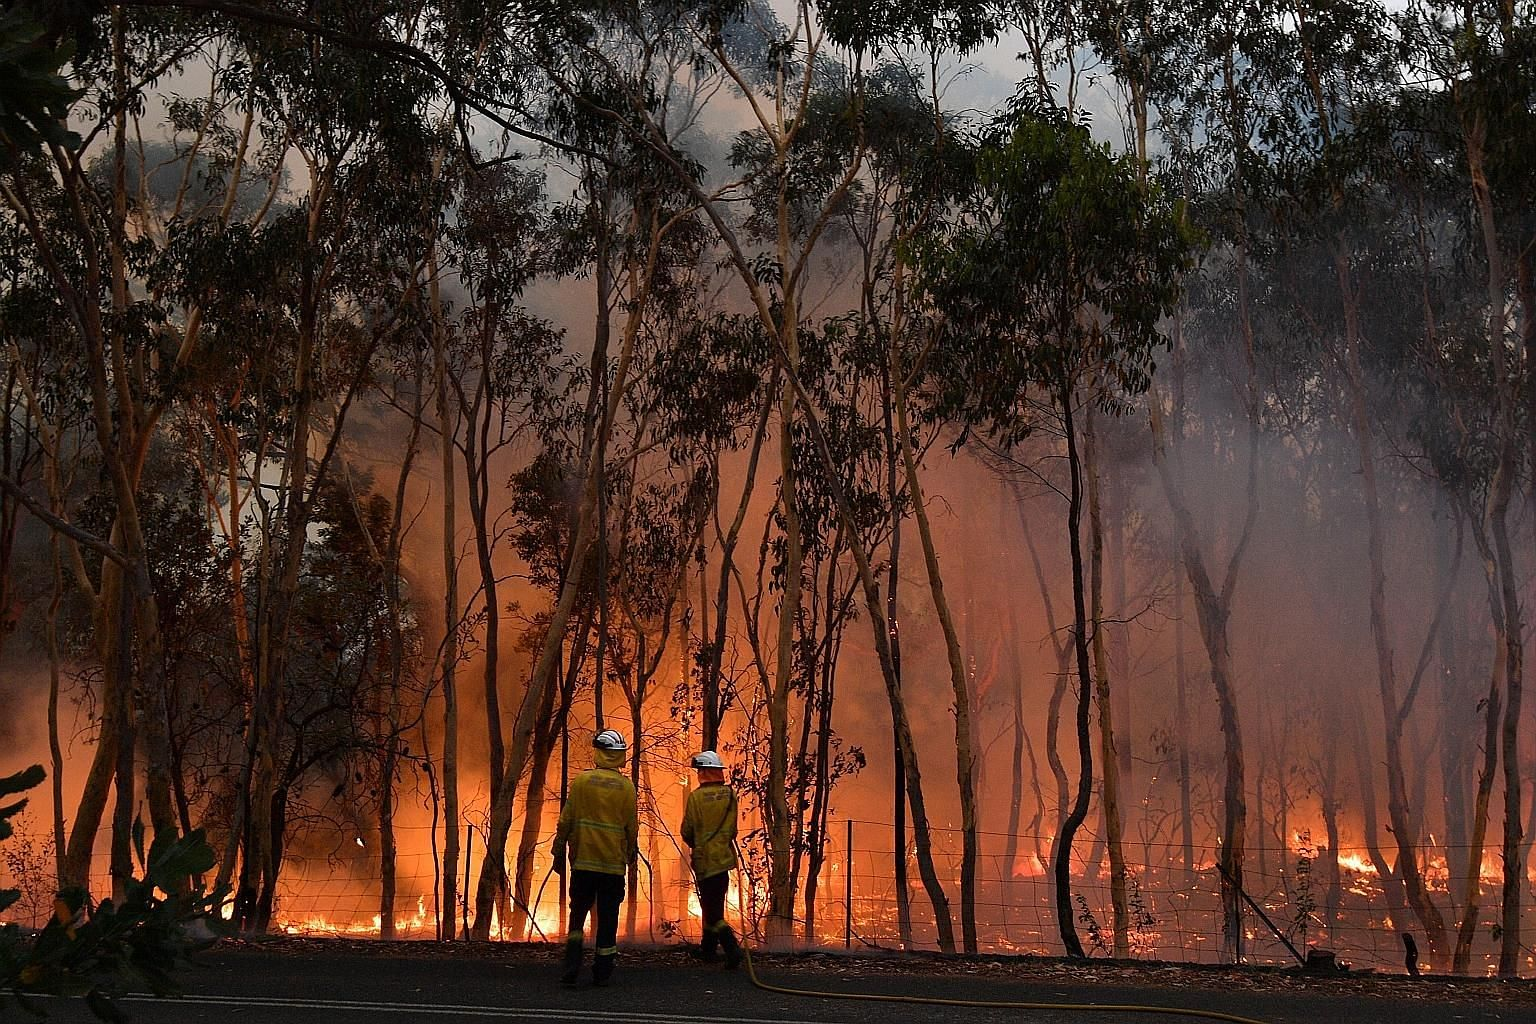 Firefighters trying to protect residential areas from encroaching bush fires in Central Coast, north of Sydney, yesterday. Sydney has experienced record levels of hazardous air pollution from the fires. PHOTO: AGENCE FRANCE-PRESSE